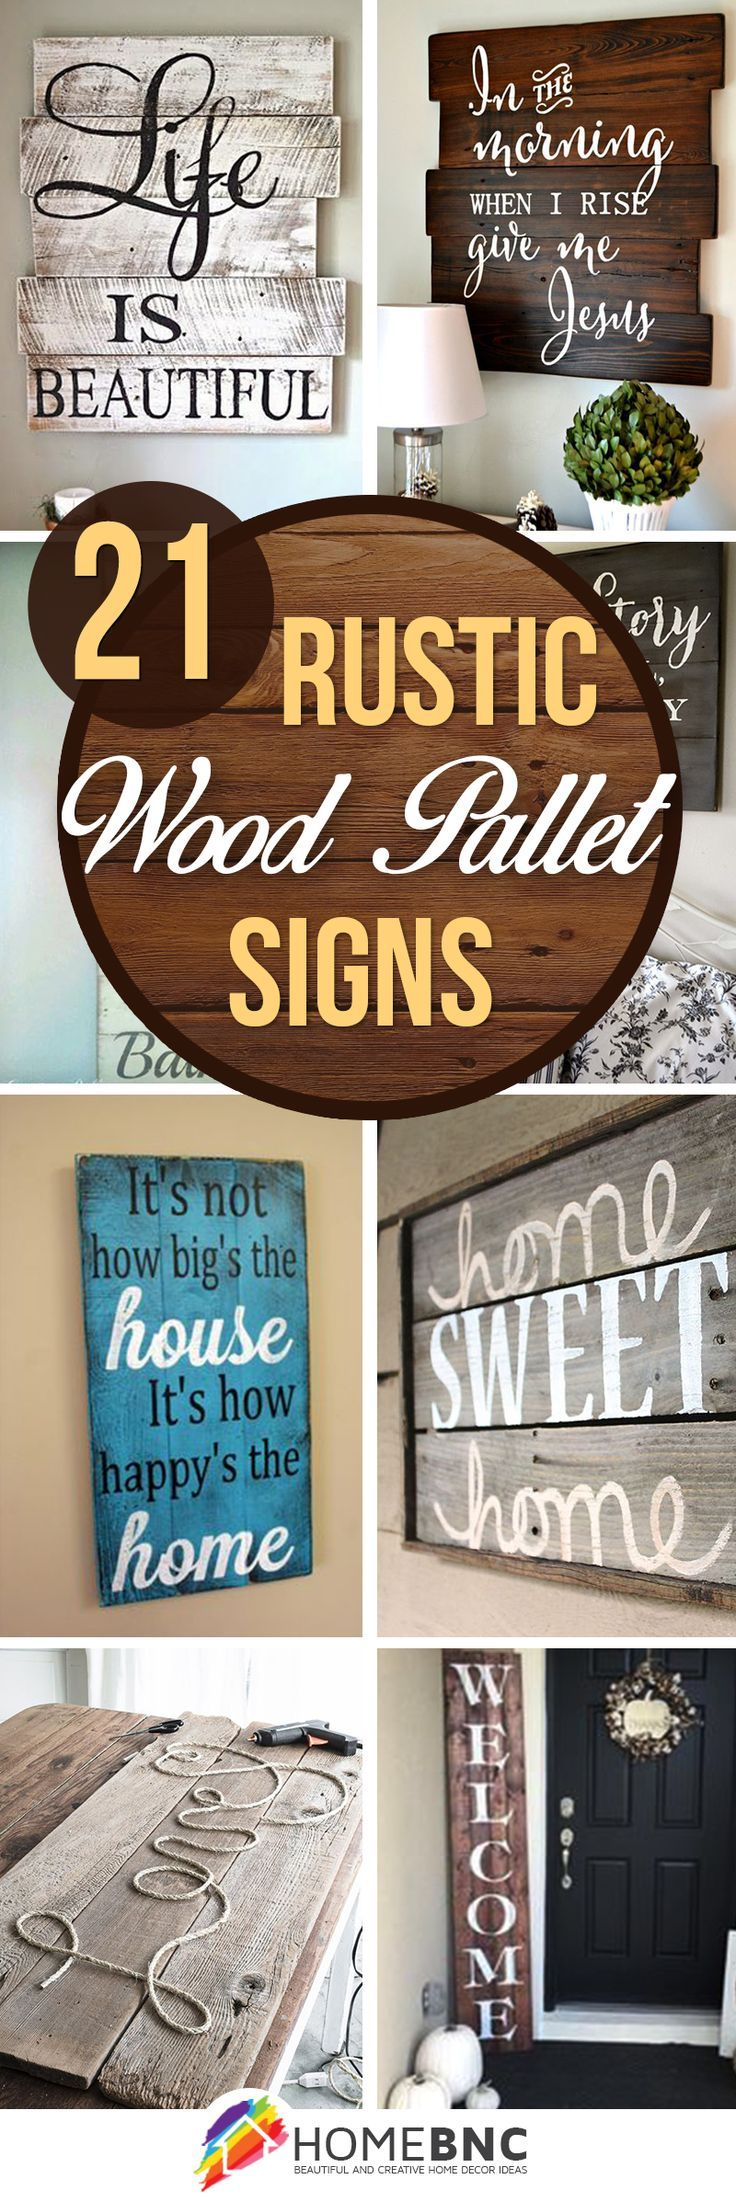 3287 best Wood projects images on Pinterest | Stall signs, Wooden ...